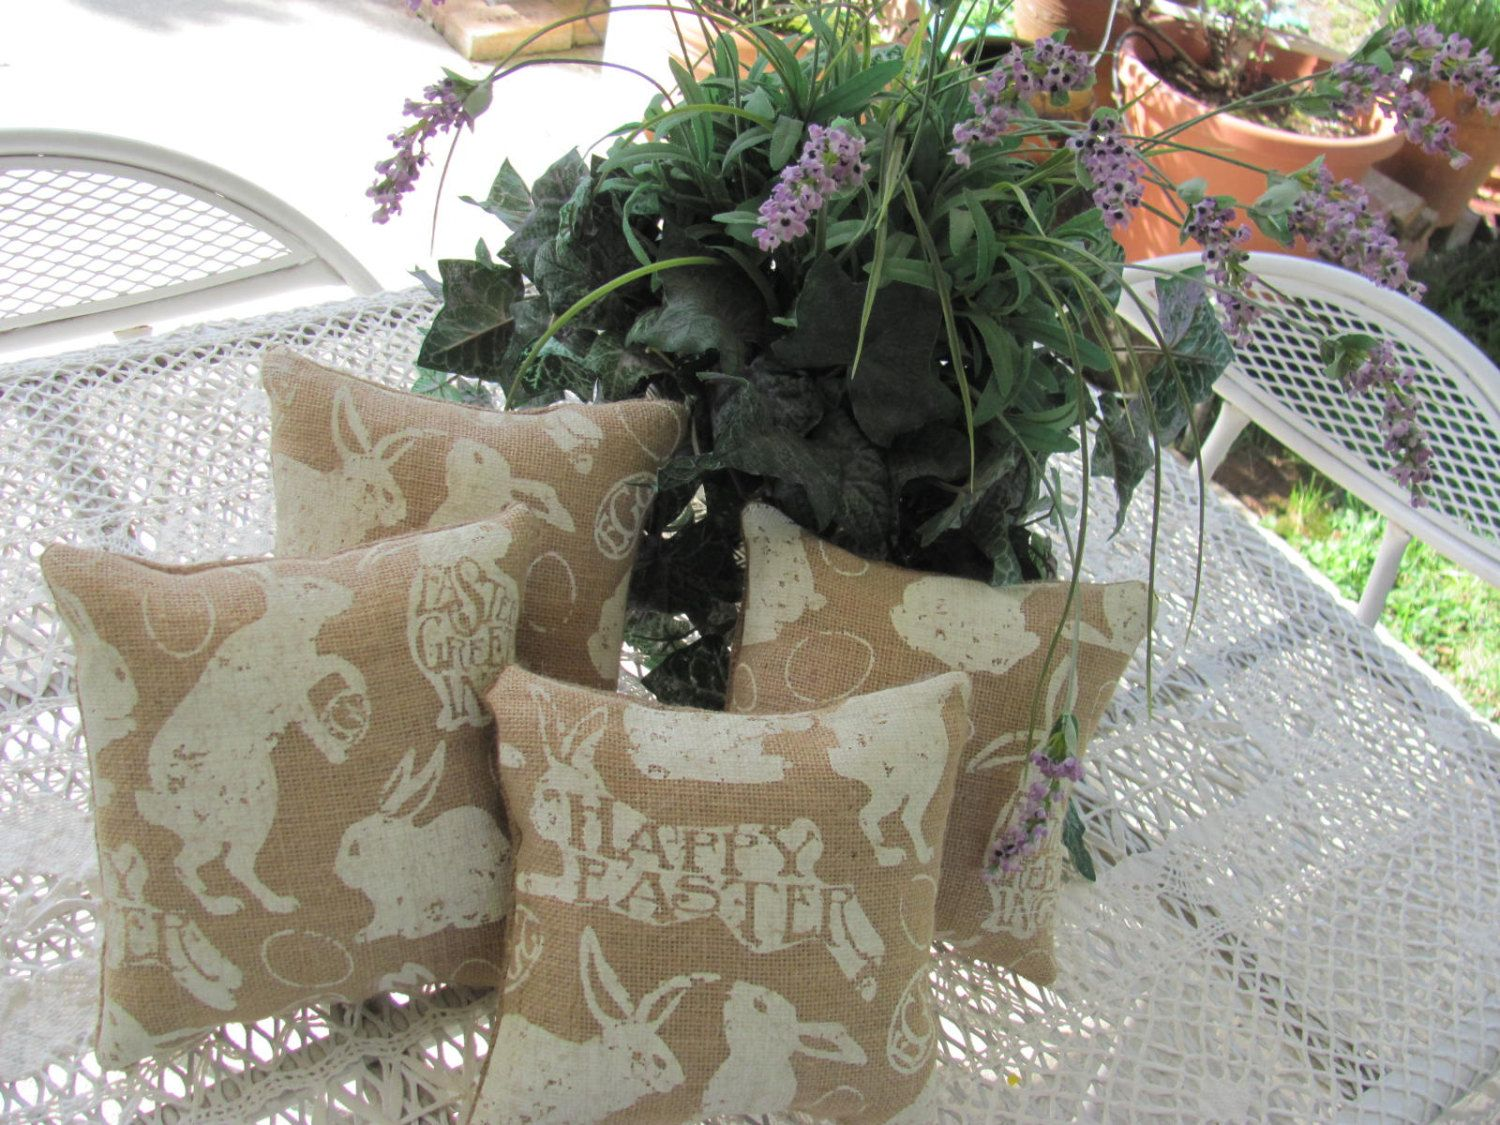 Available til Mr.17th..It' a Smaller Plump Easter Bunny Burlap Pillow, Happy Easter Decor 9E by THISPLUSTHAT on Etsy